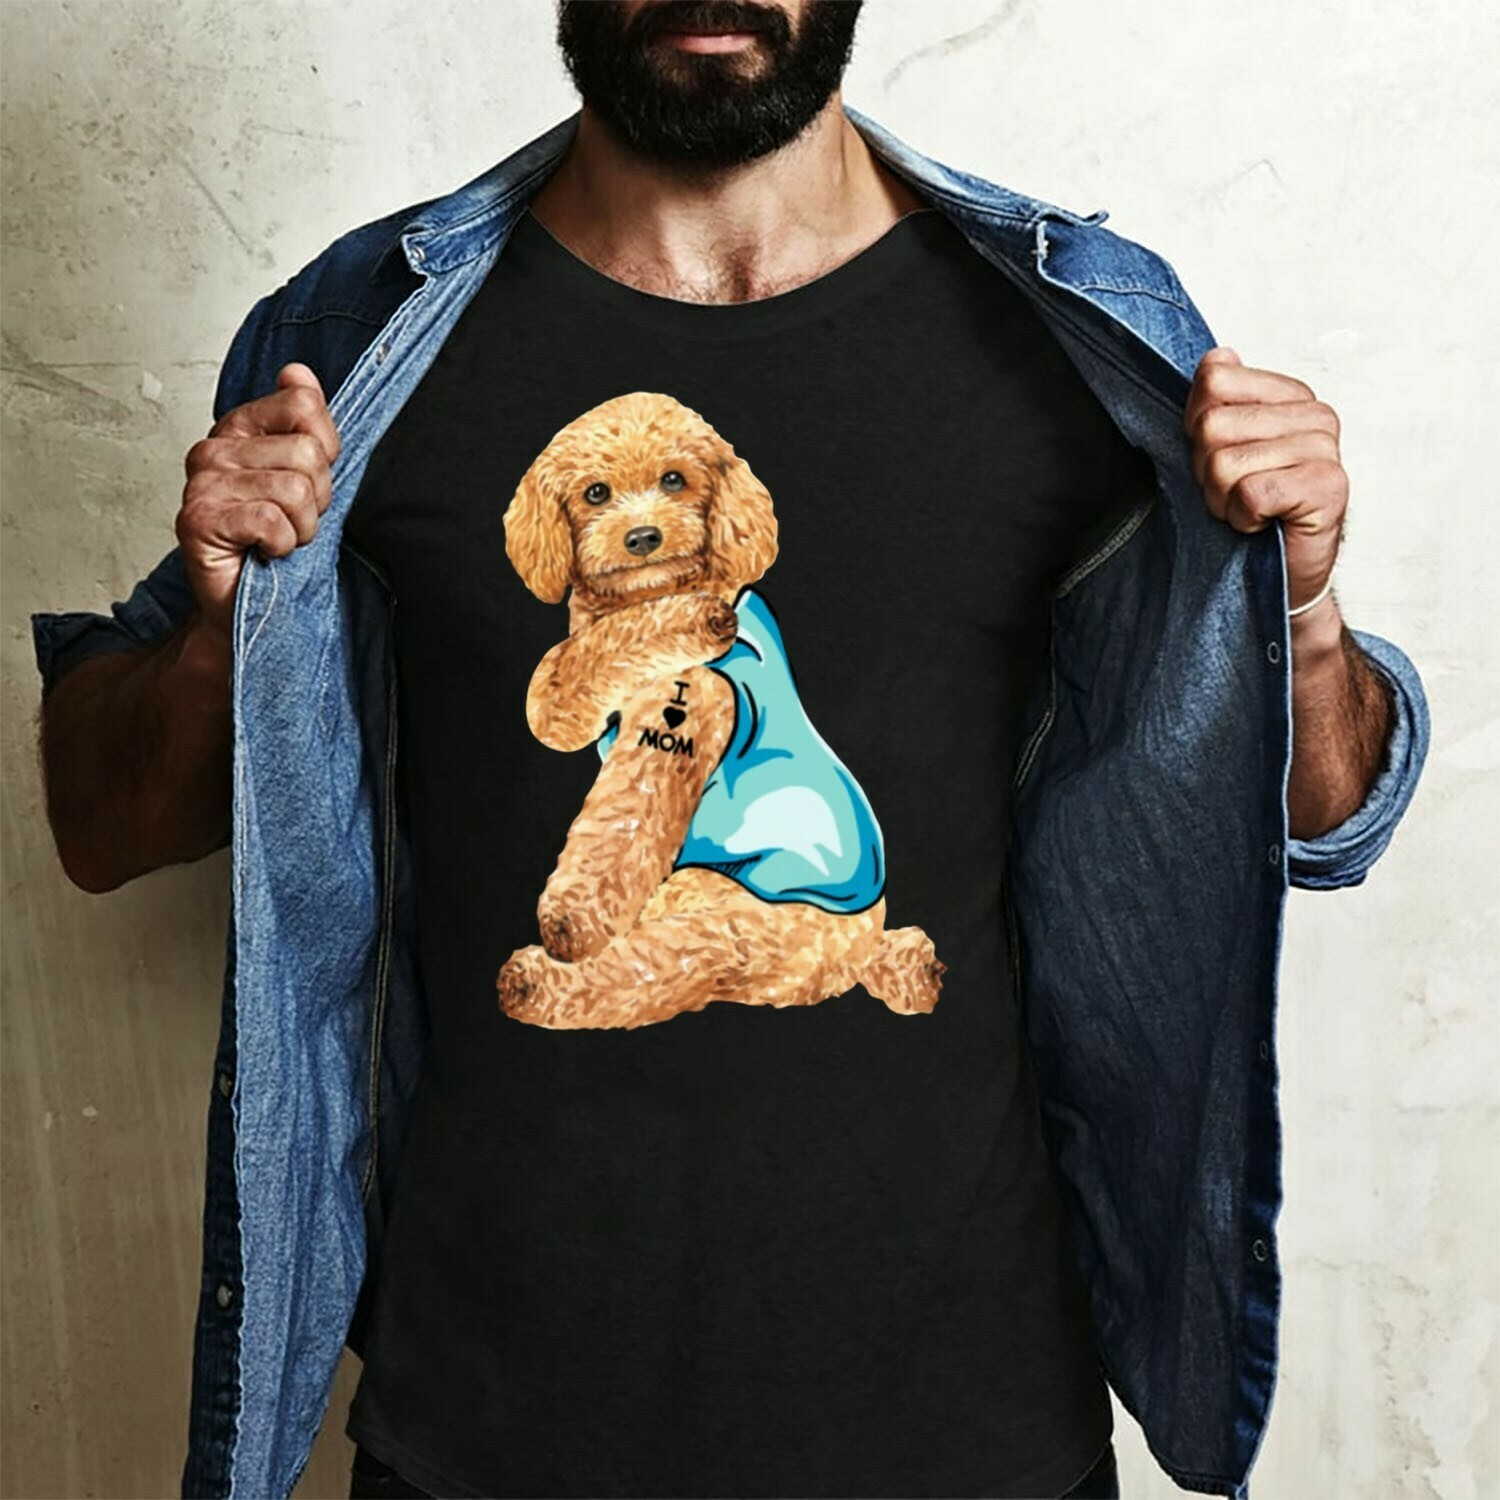 Toy Poodle Dog Tattoos I Love Mom Funny Shirt T-Shirt Hoodie Sweatshirt Sweater Tee Kids Youth Gifts Jolly Family Gifts